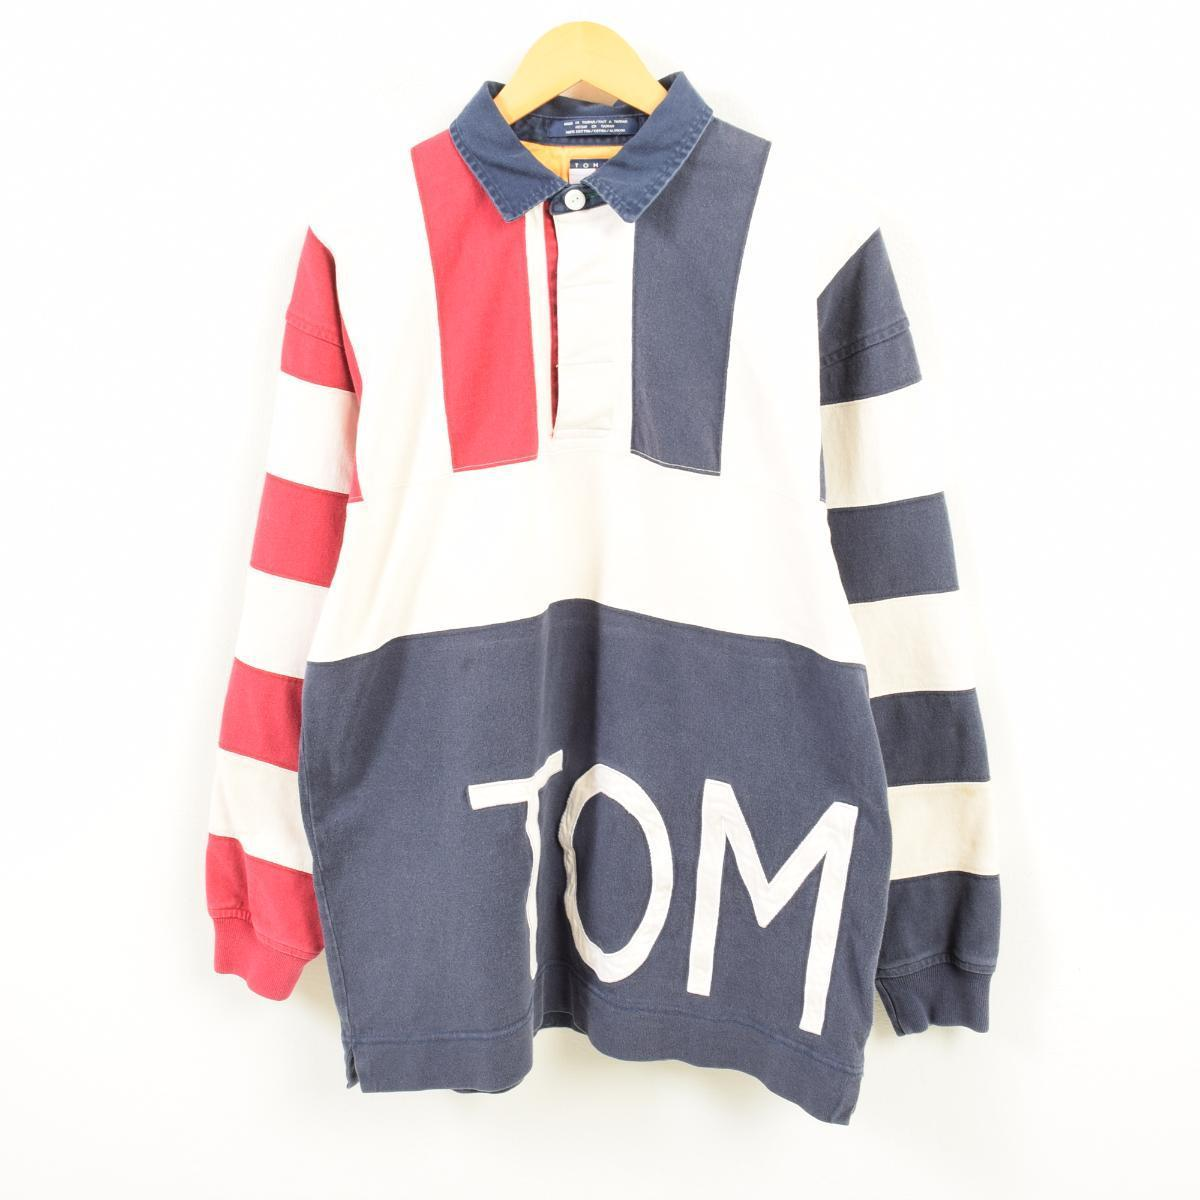 3538d3388 90s トミーヒルフィガー TOMMY HILFIGER decalogo big logo tricolor color long sleeves  rugby shirt men L ...